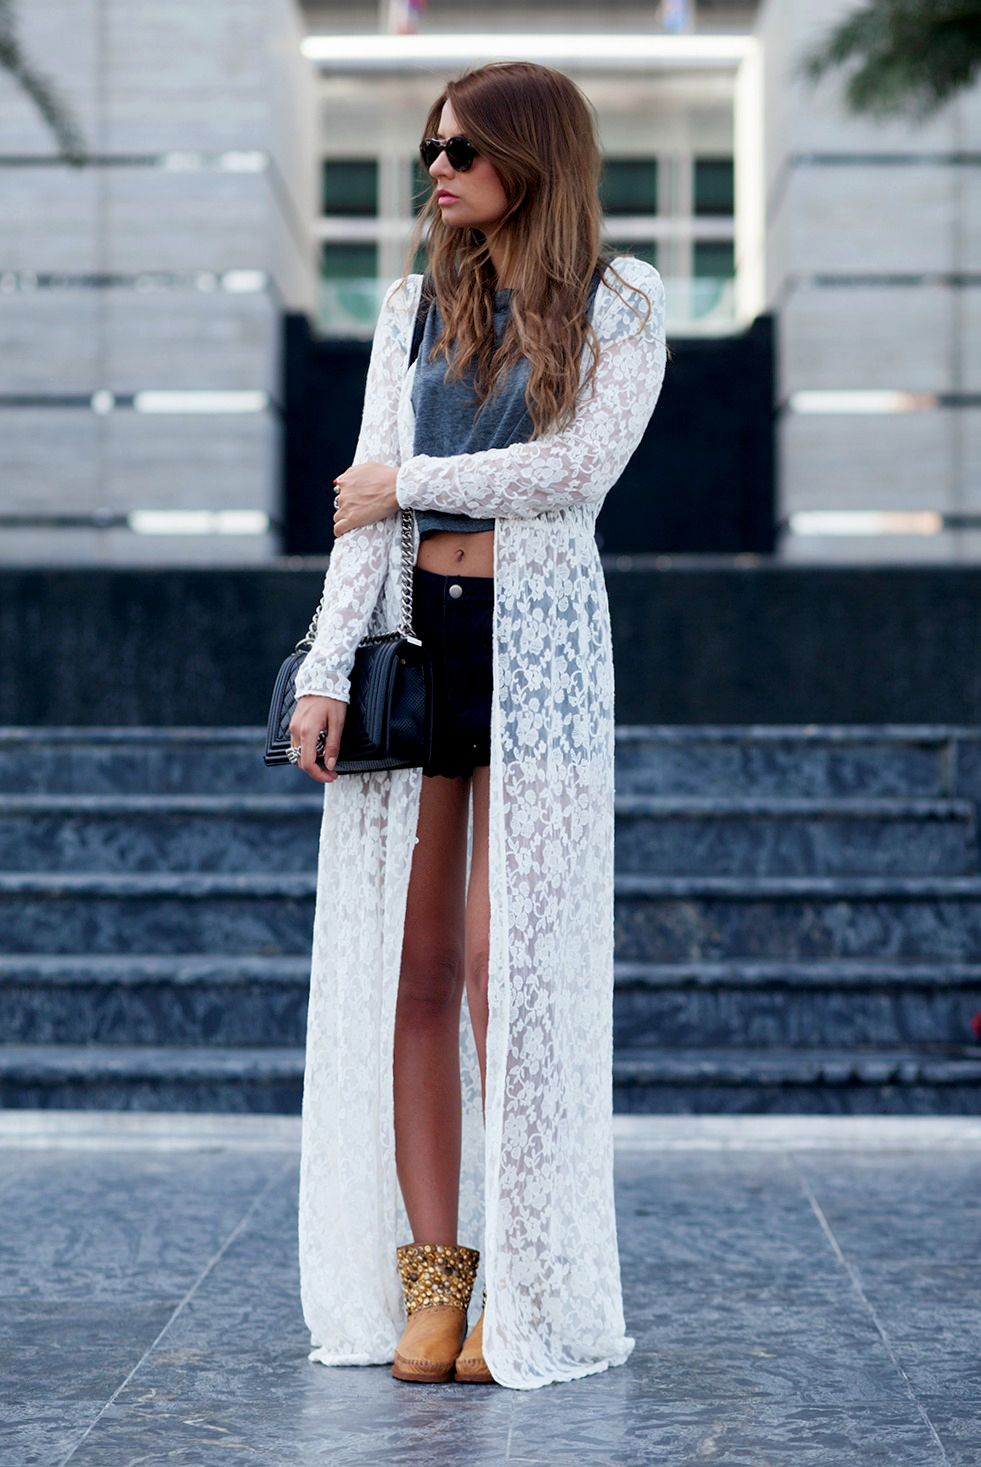 Long lace cardigan - Cara Loren In Shopriffraff S Cream Lace Long Overlay Cardigan This Shop Has The Cutest Trends At The Best Prices Cool People In Riffraff Pinterest